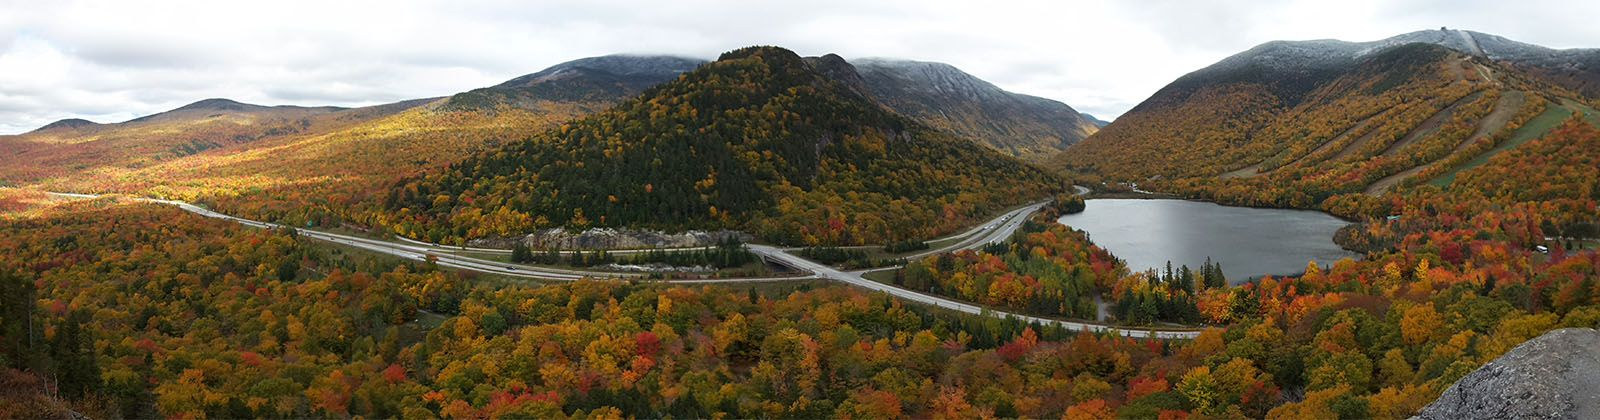 Fanconia notch Pano from Artist Bluff October 2016